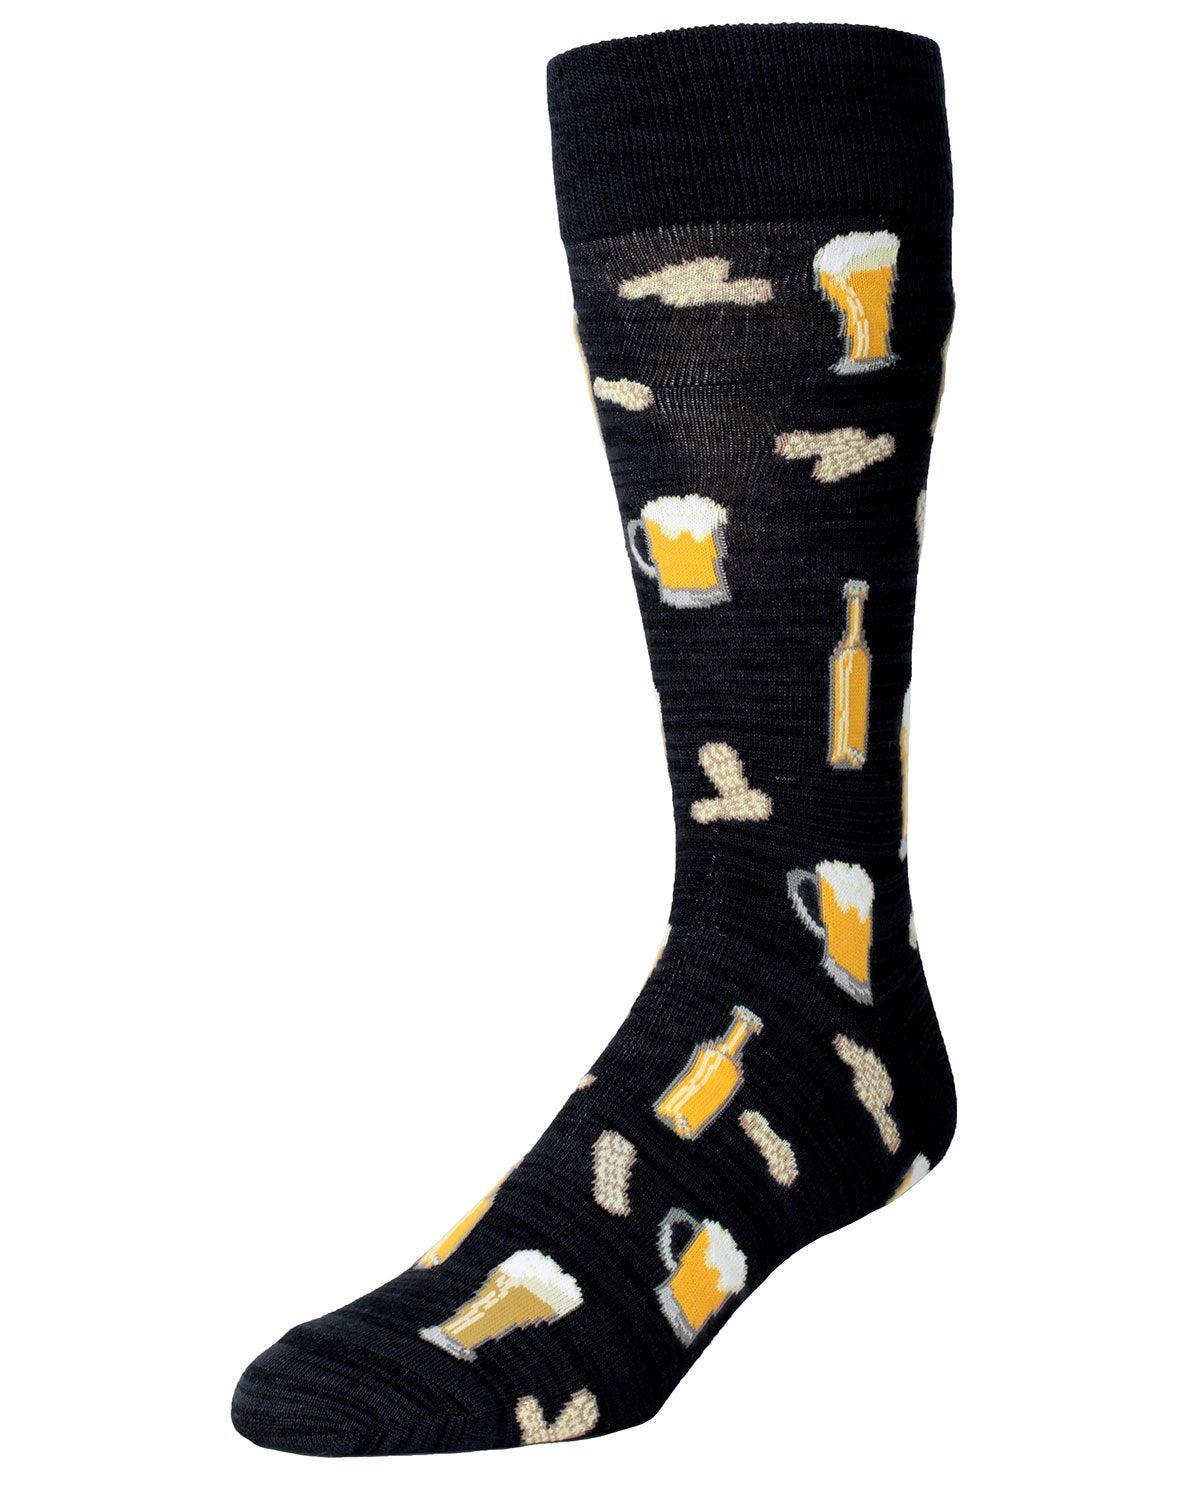 Happy Hour Beer and Peanuts Socks